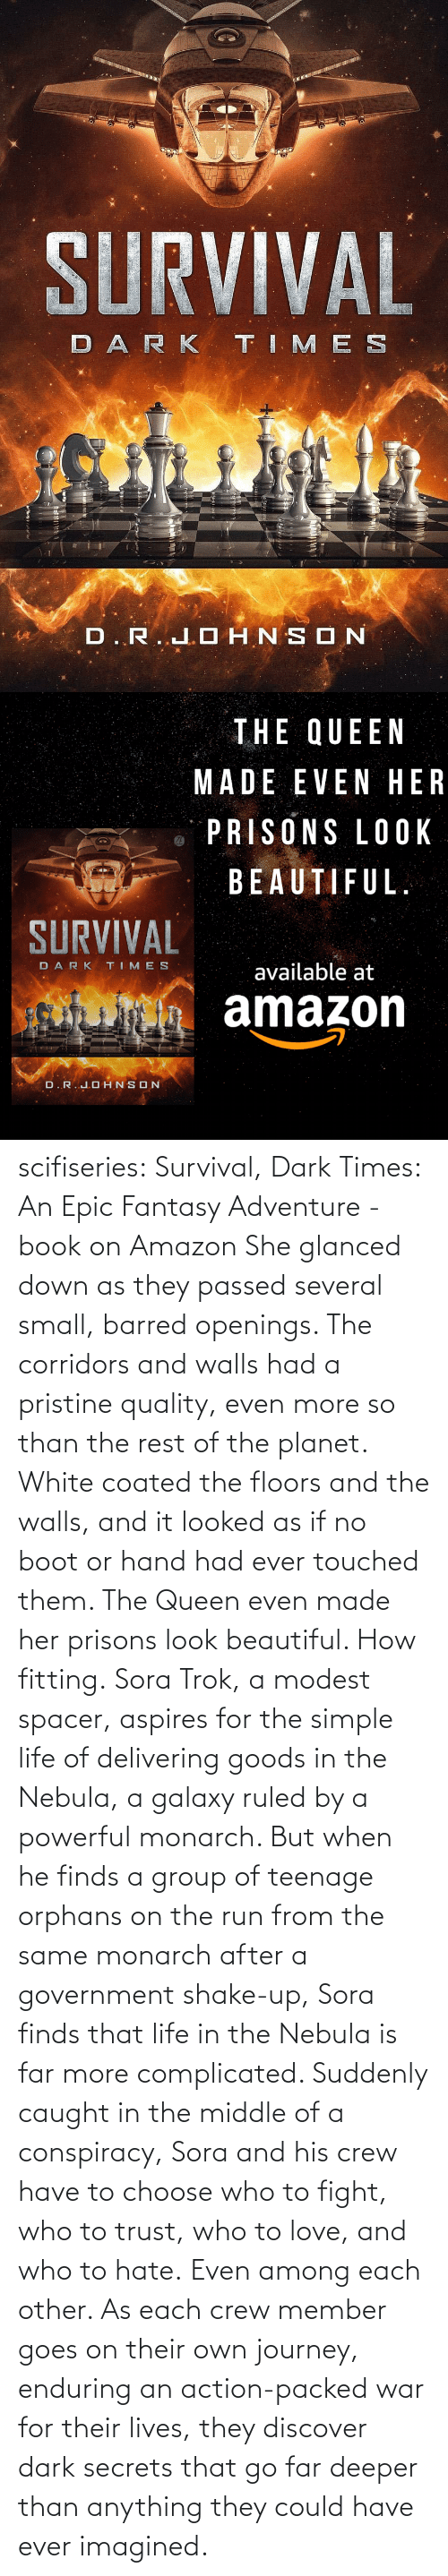 trust: scifiseries: Survival, Dark Times: An Epic Fantasy Adventure - book on Amazon  She glanced down as they  passed several small, barred openings. The corridors and walls had a  pristine quality, even more so than the rest of the planet. White coated  the floors and the walls, and it looked as if no boot or hand had ever  touched them.  The Queen even made her prisons look beautiful.  How fitting. Sora  Trok, a modest spacer, aspires for the simple life of delivering goods  in the Nebula, a galaxy ruled by a powerful monarch. But when he finds a  group of teenage orphans on the run from the same monarch after a  government shake-up, Sora finds that life in the Nebula is far more complicated.  Suddenly  caught in the middle of a conspiracy, Sora and his crew have to choose  who to fight, who to trust, who to love, and who to hate. Even among each other.  As  each crew member goes on their own journey, enduring an action-packed  war for their lives, they discover dark secrets that go far deeper than  anything they could have ever imagined.